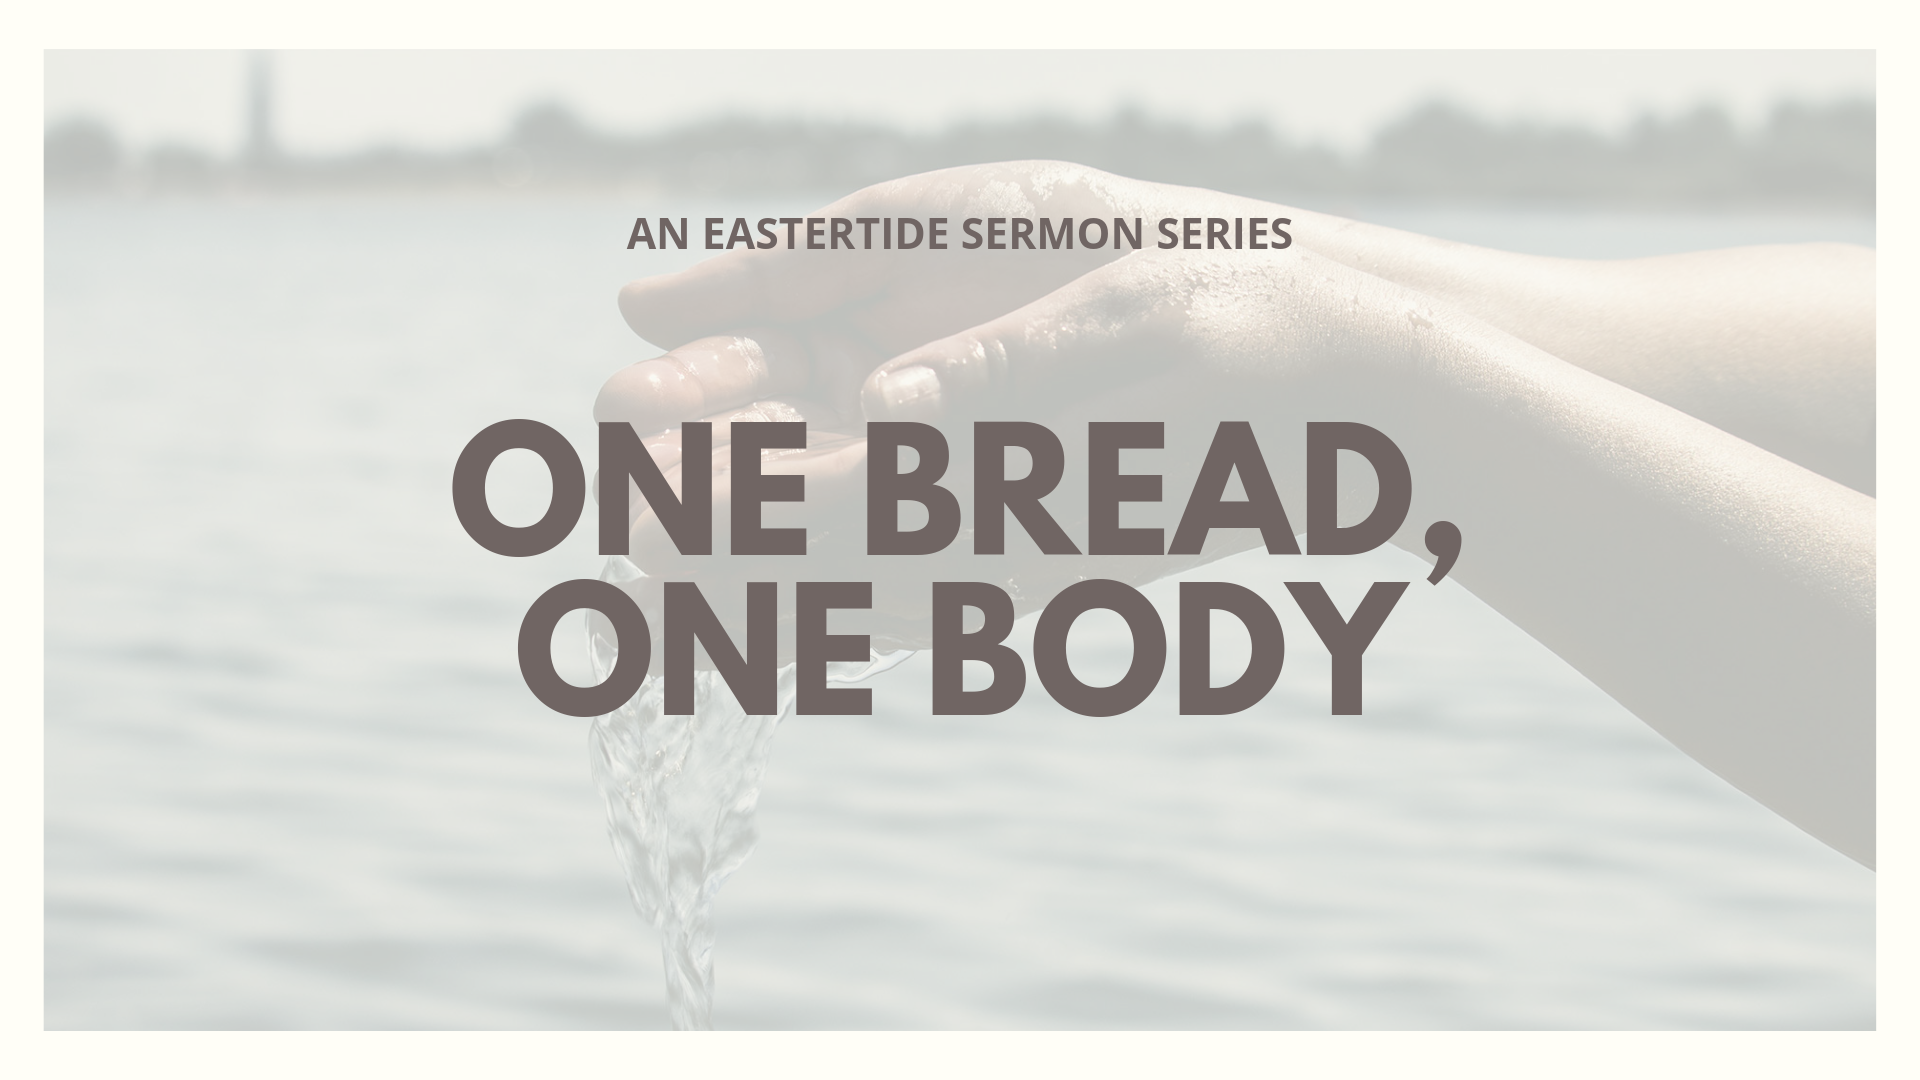 one bread one body sans subtitle.png